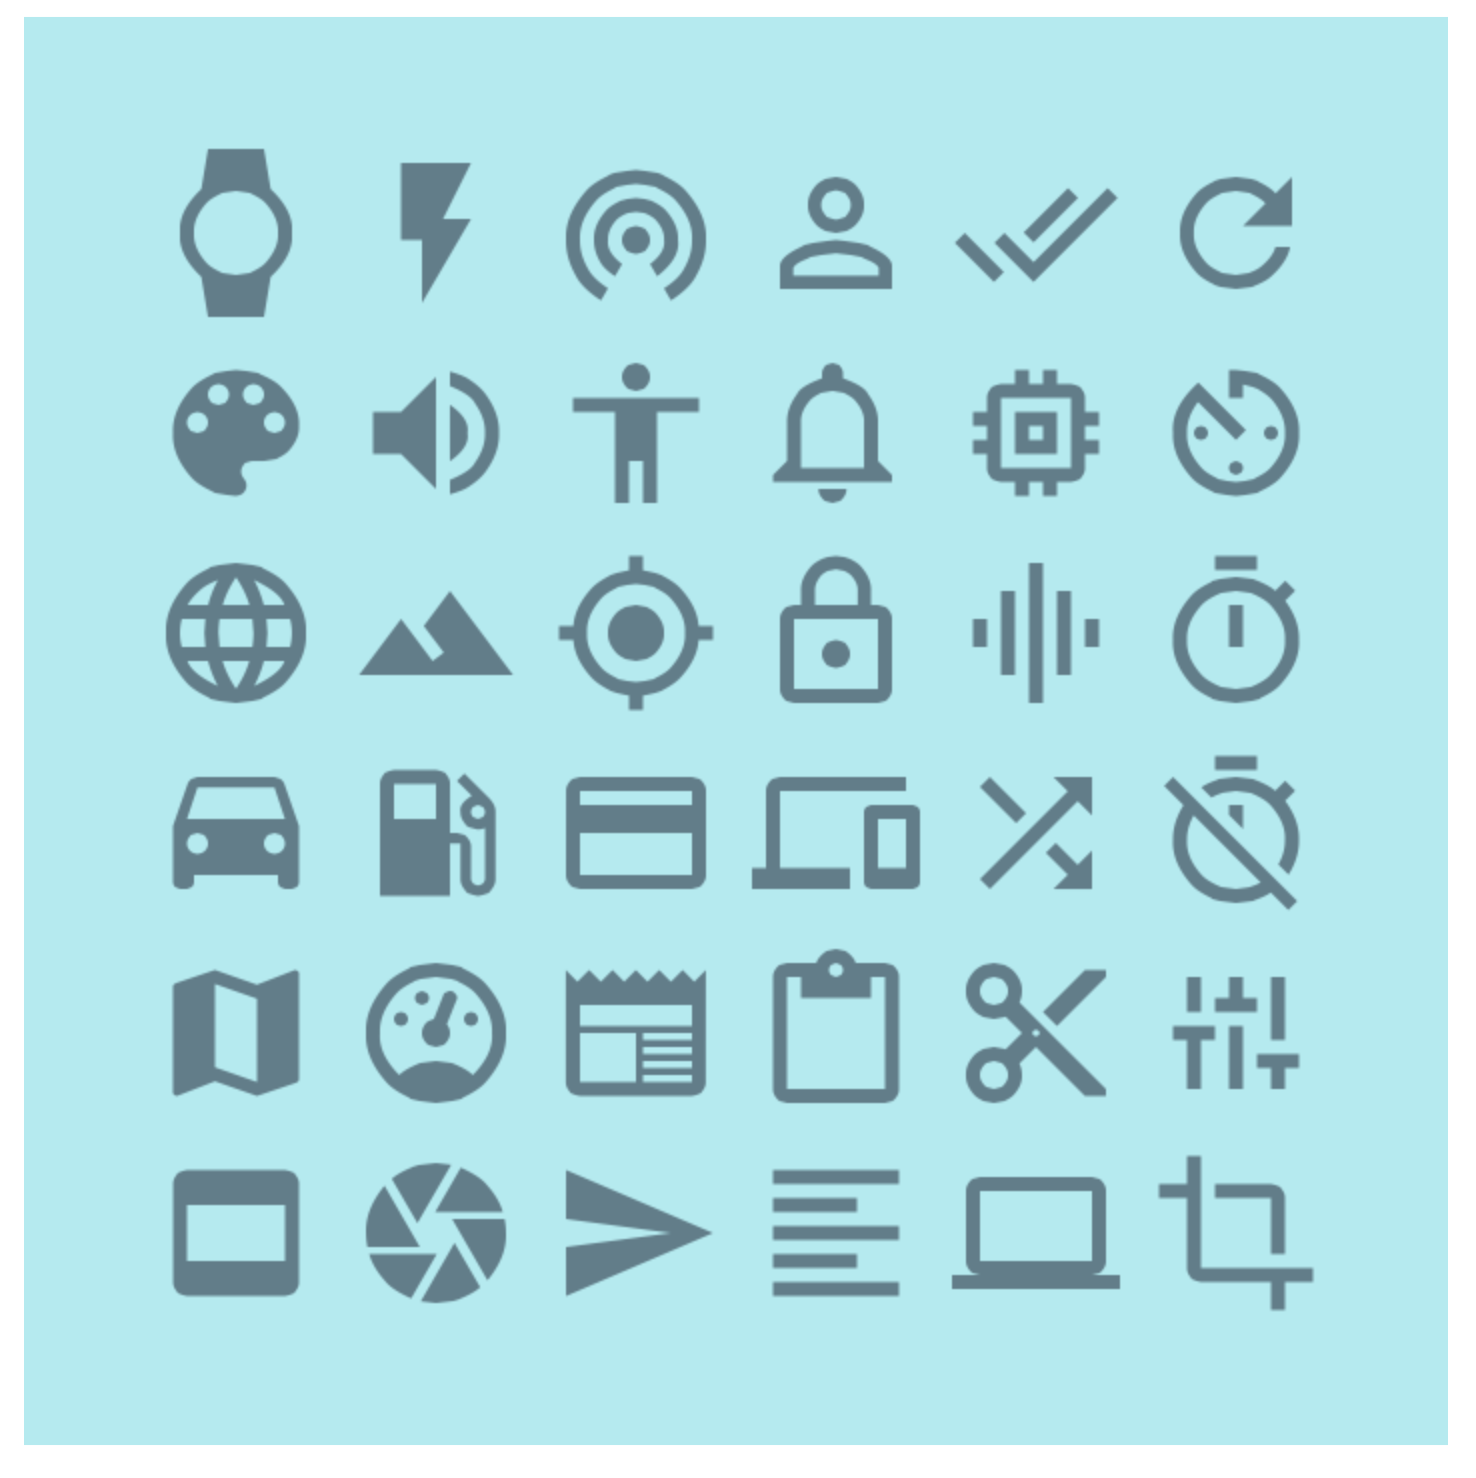 Material Design even provides an entire set of system icons .